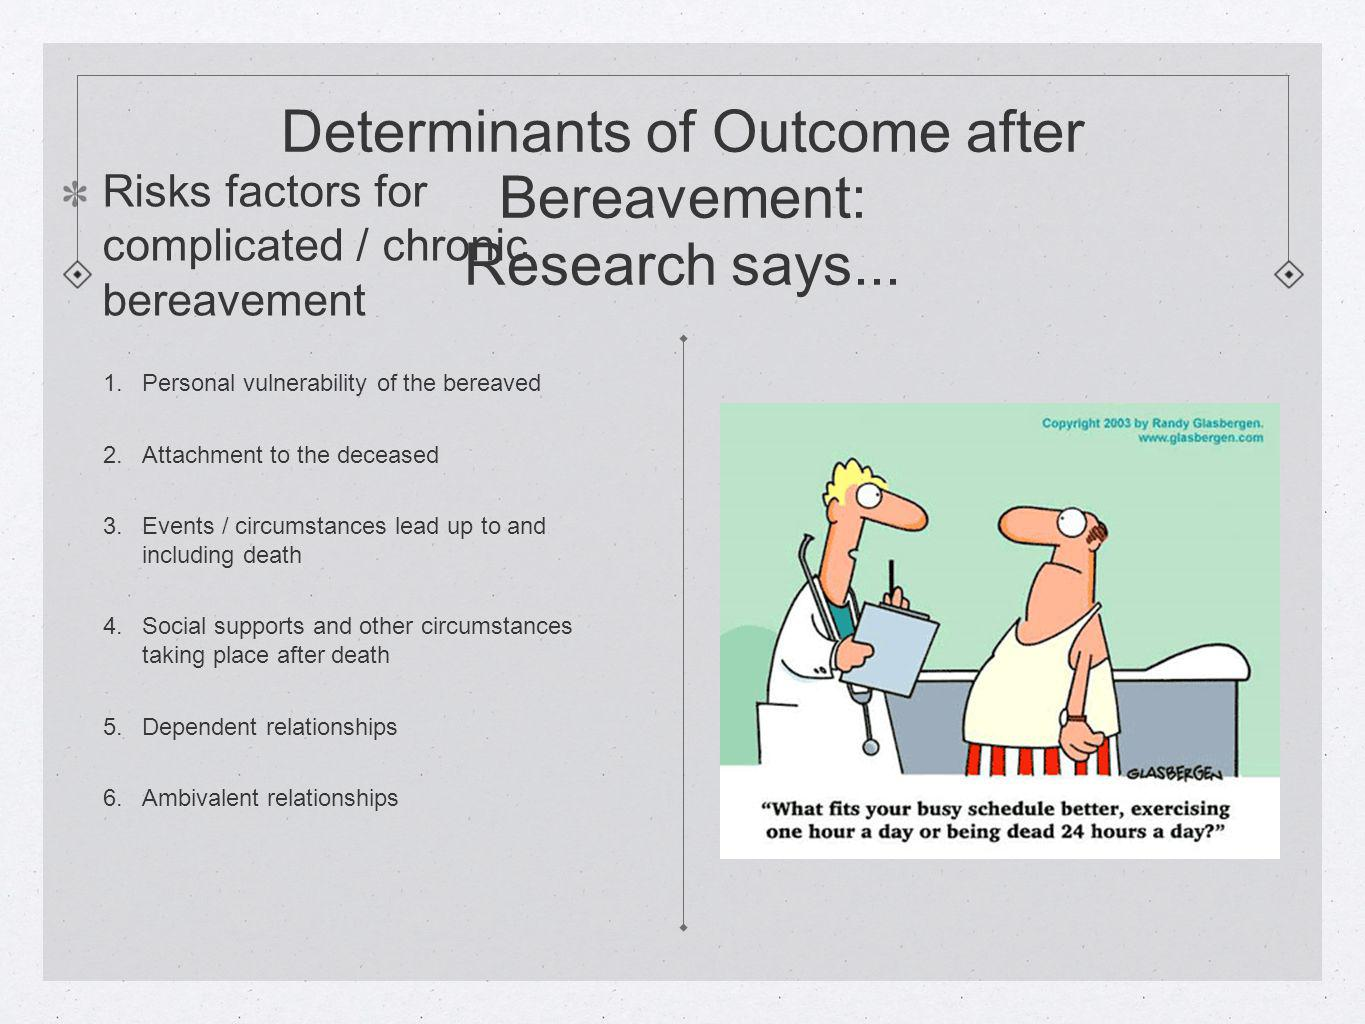 Determinants of Outcome after Bereavement: Research says...